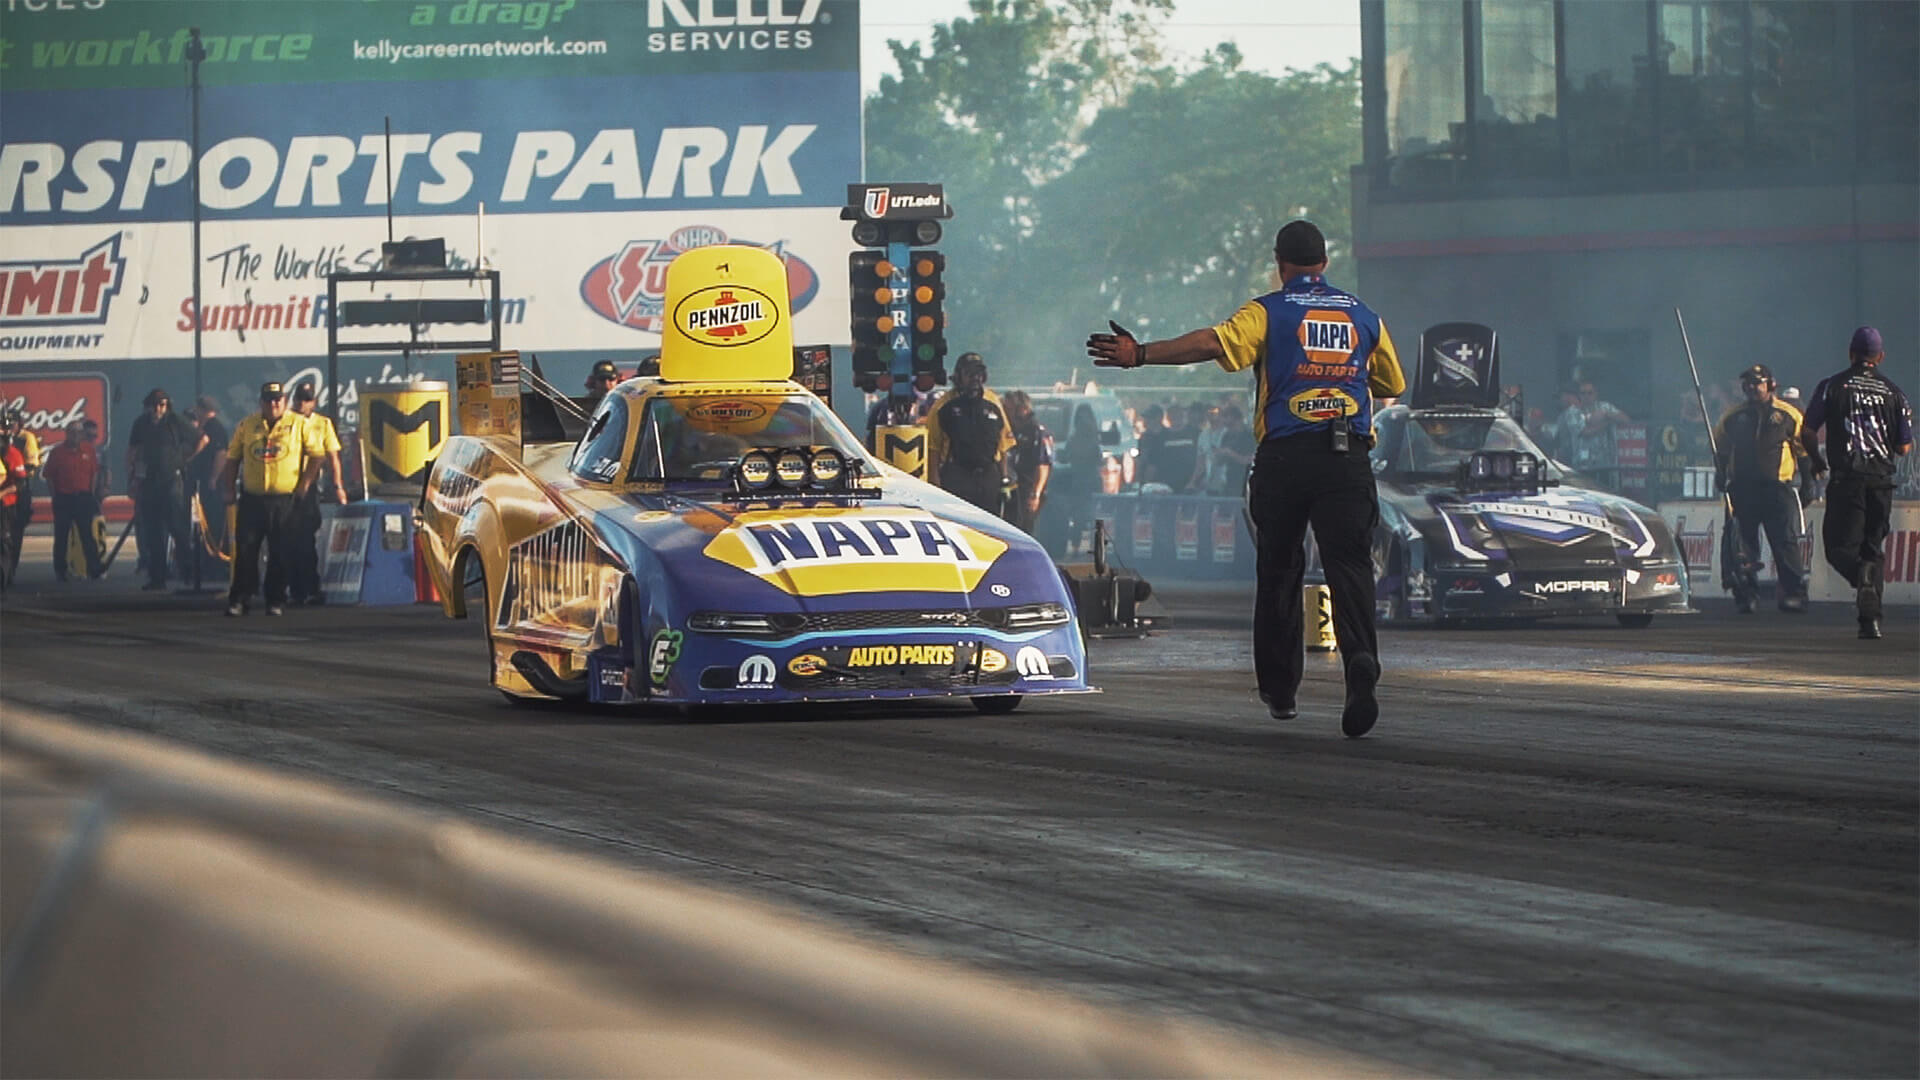 Crew members help guide Ron Capps and Jack Beckman back towards the starting line at the 2019 Summit Racing Equipment NHRA Nationals.